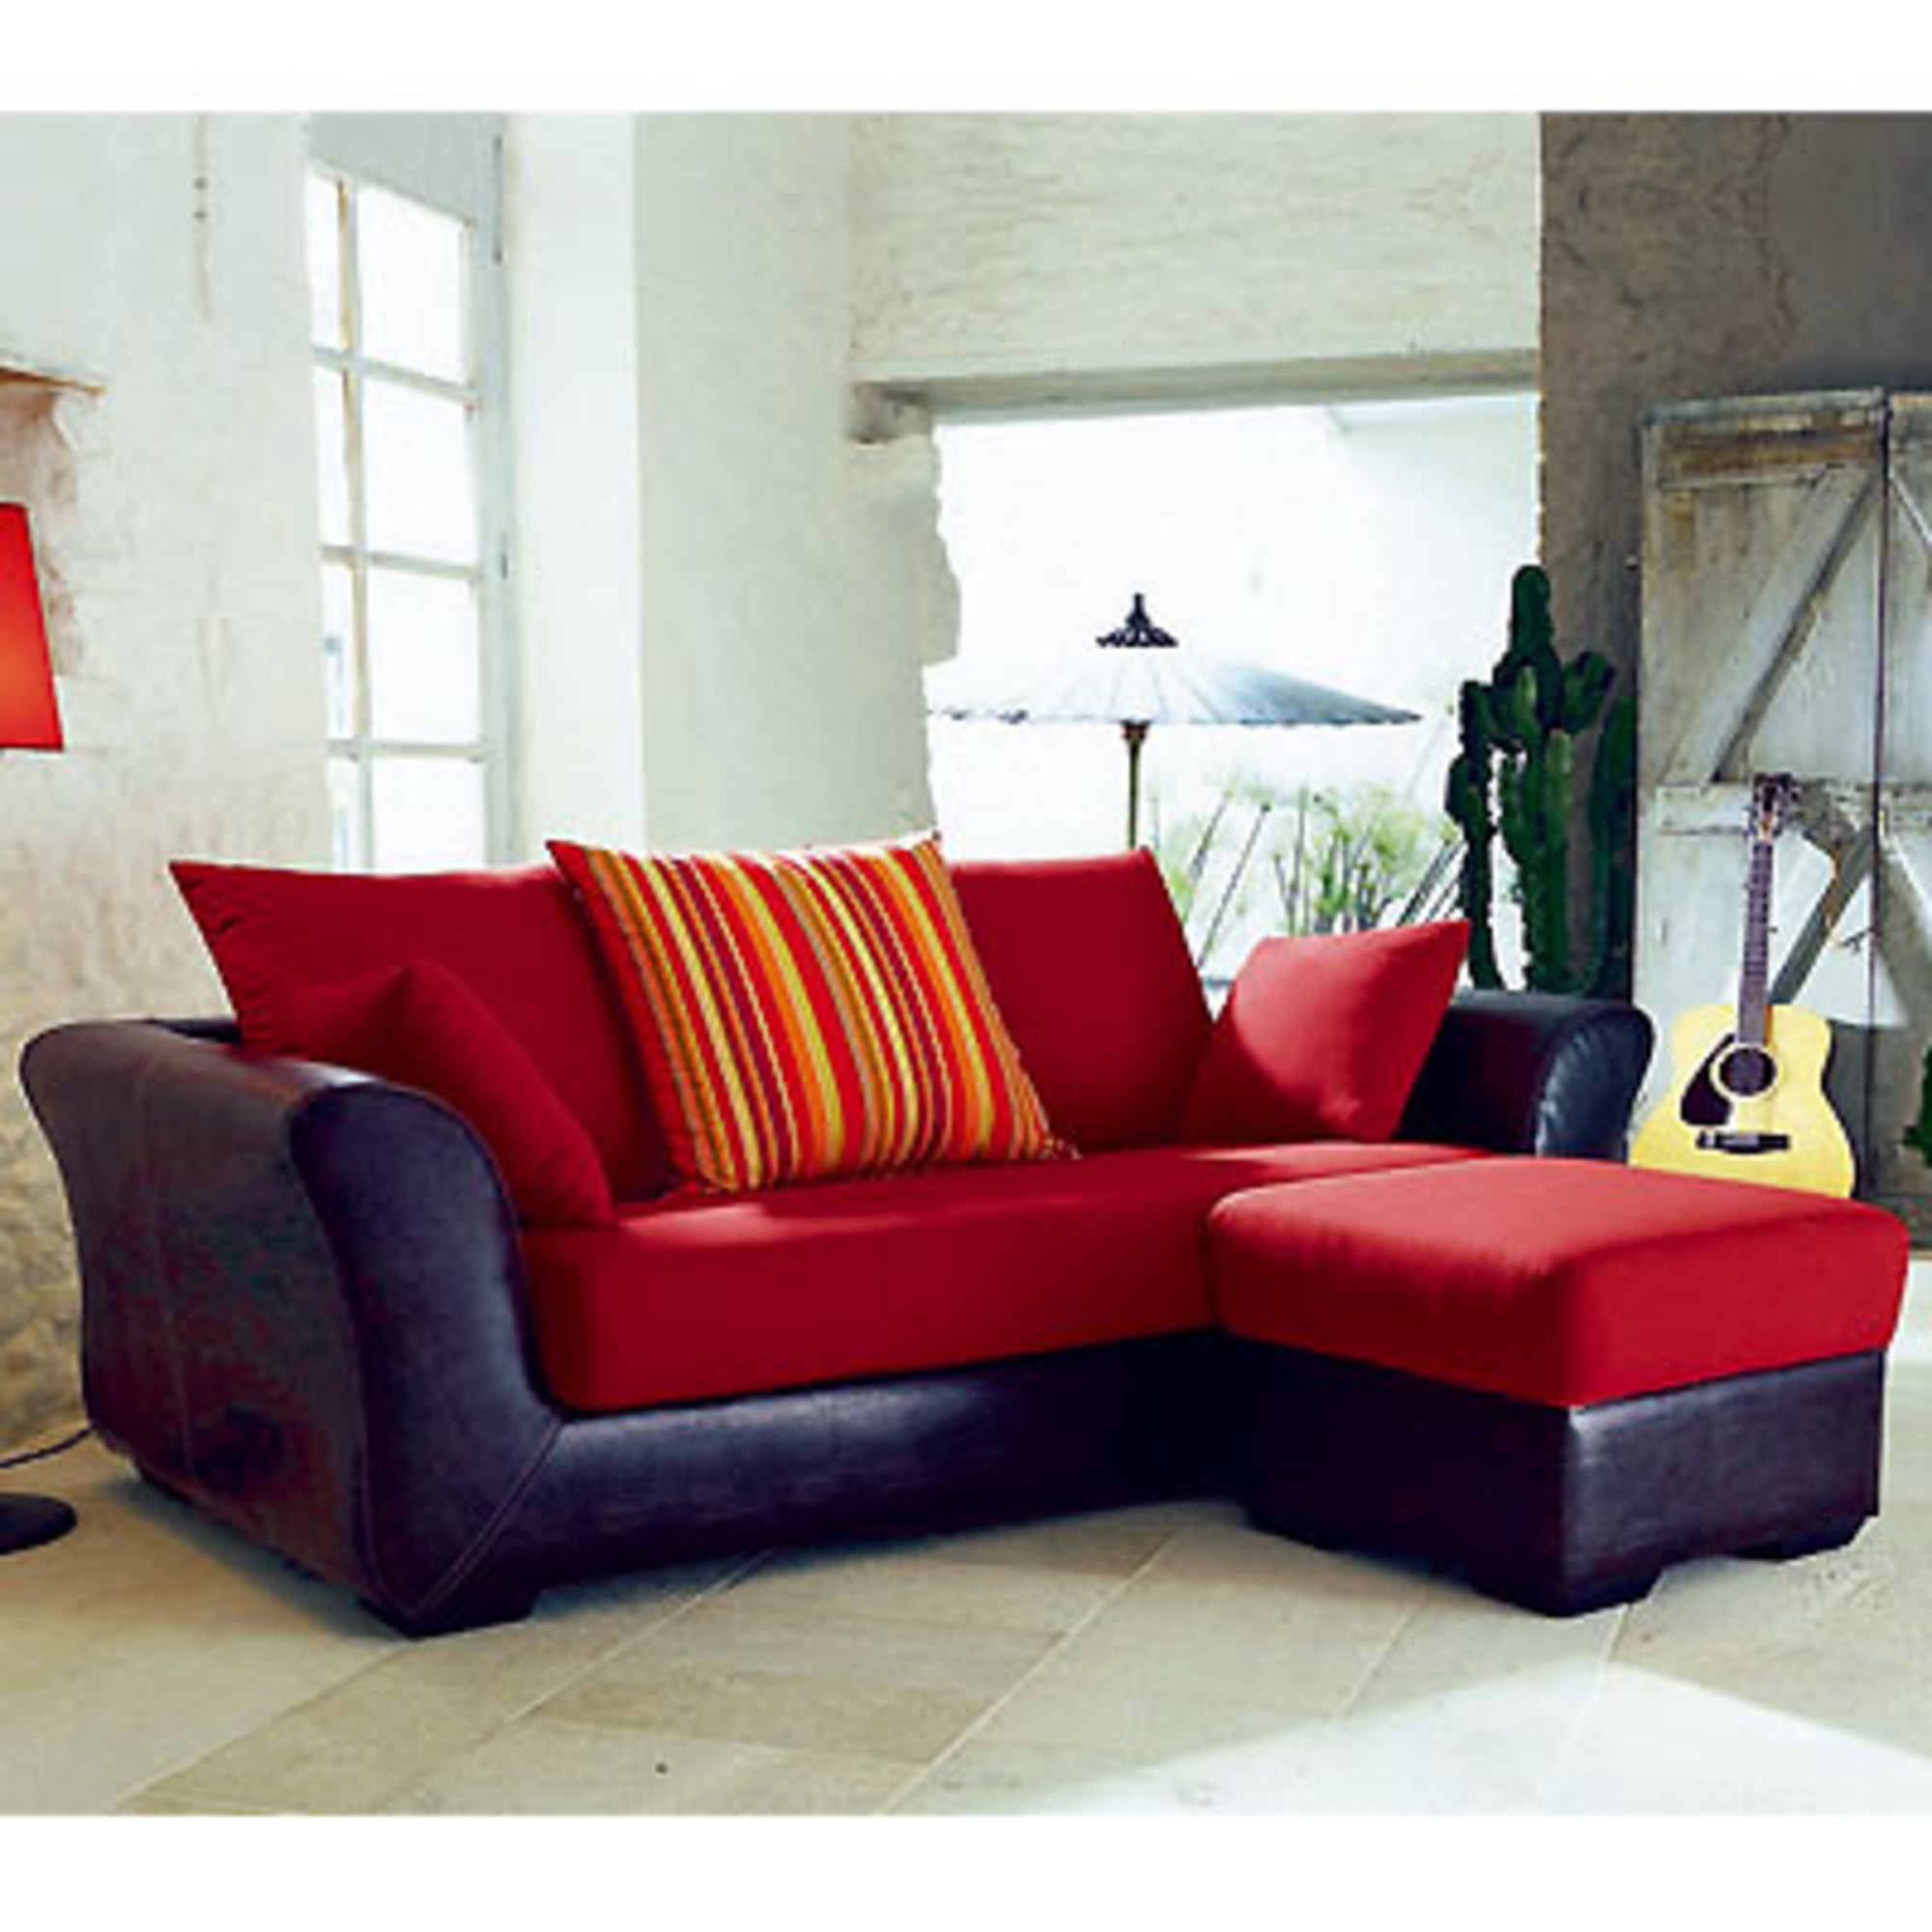 Canap d 39 angle r versible 3 places fixe pouf sansierra rouge annive - Canape rouge 3 places ...